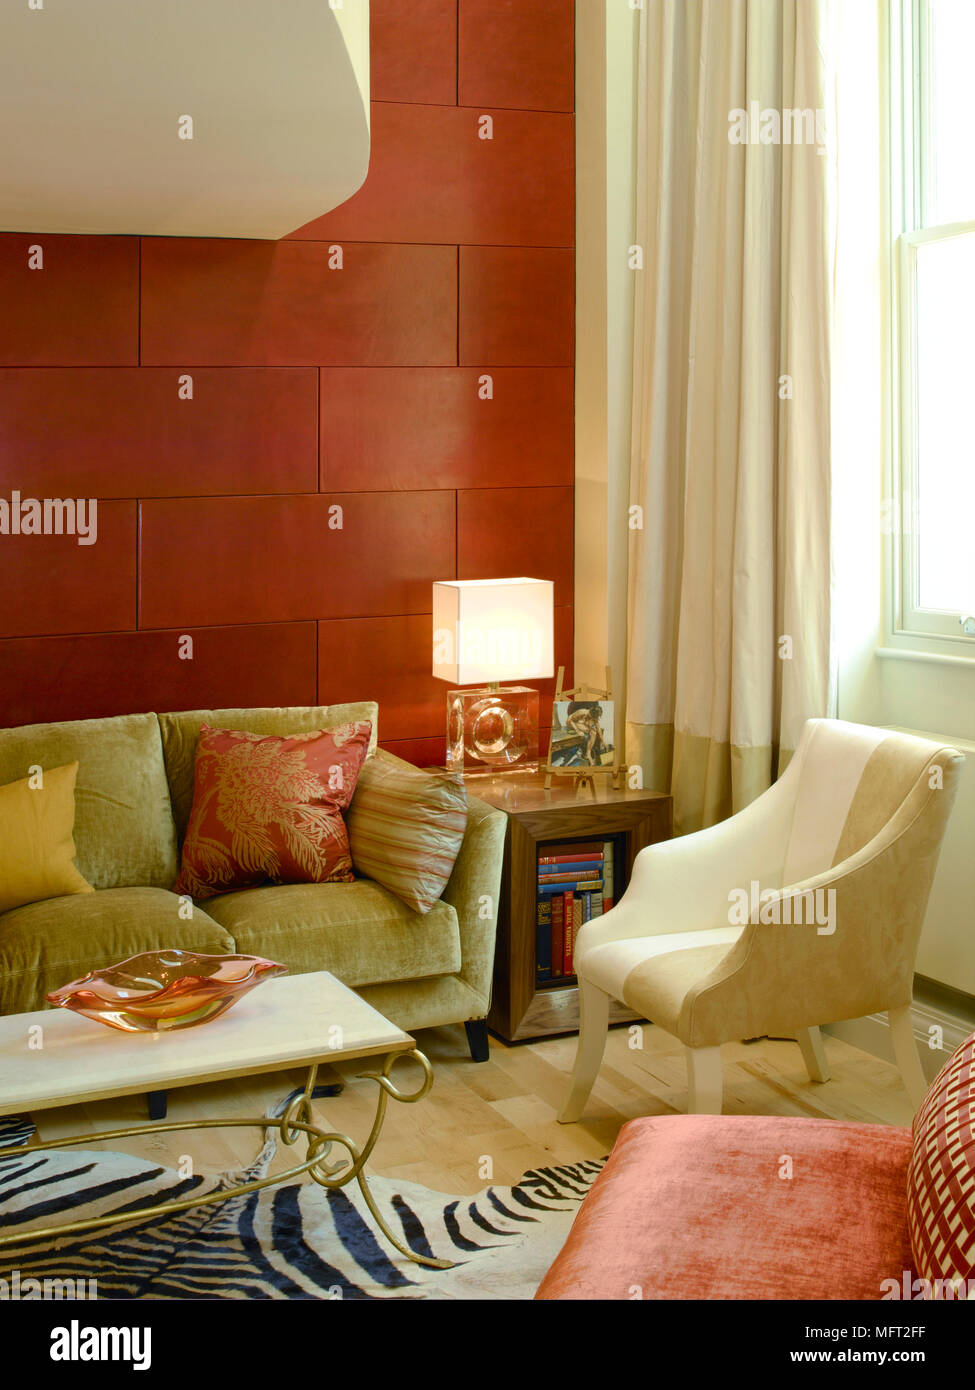 Modern Sitting Room Detail With Wood Floor, Red Tile Wall, Upholstered  Furnishings, And Sunny, Curtained Windows.